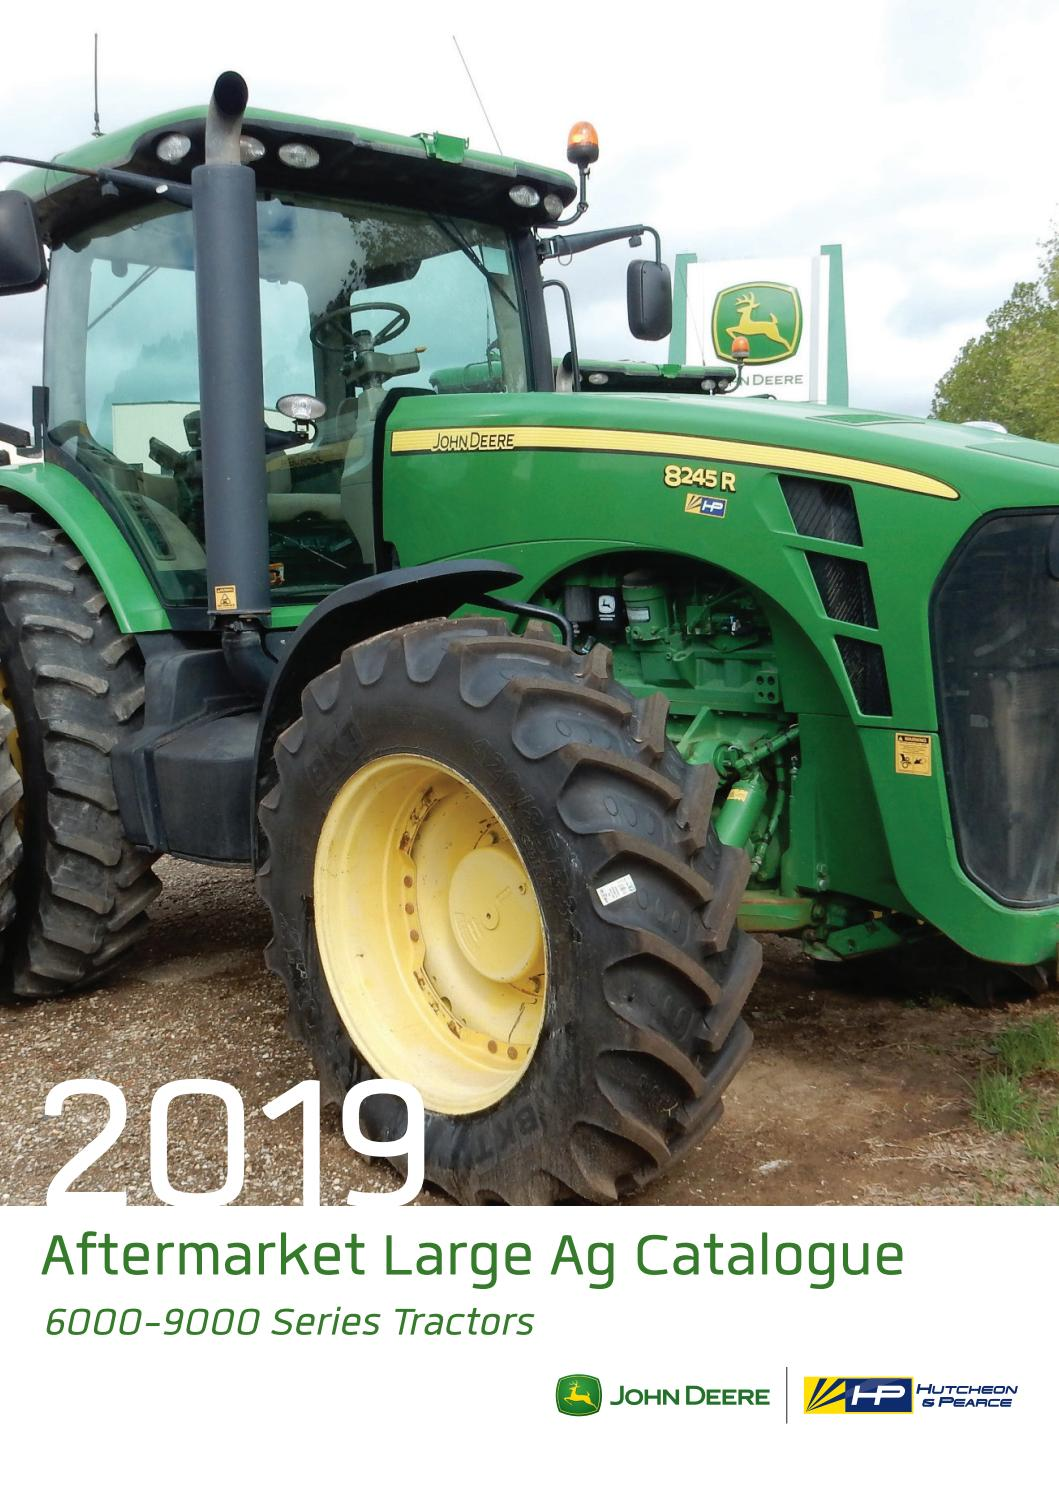 2019 Aftermarket Large Ag Catalogue 6000 9000 Series Tractors By Hutcheon And Pearce Issuu